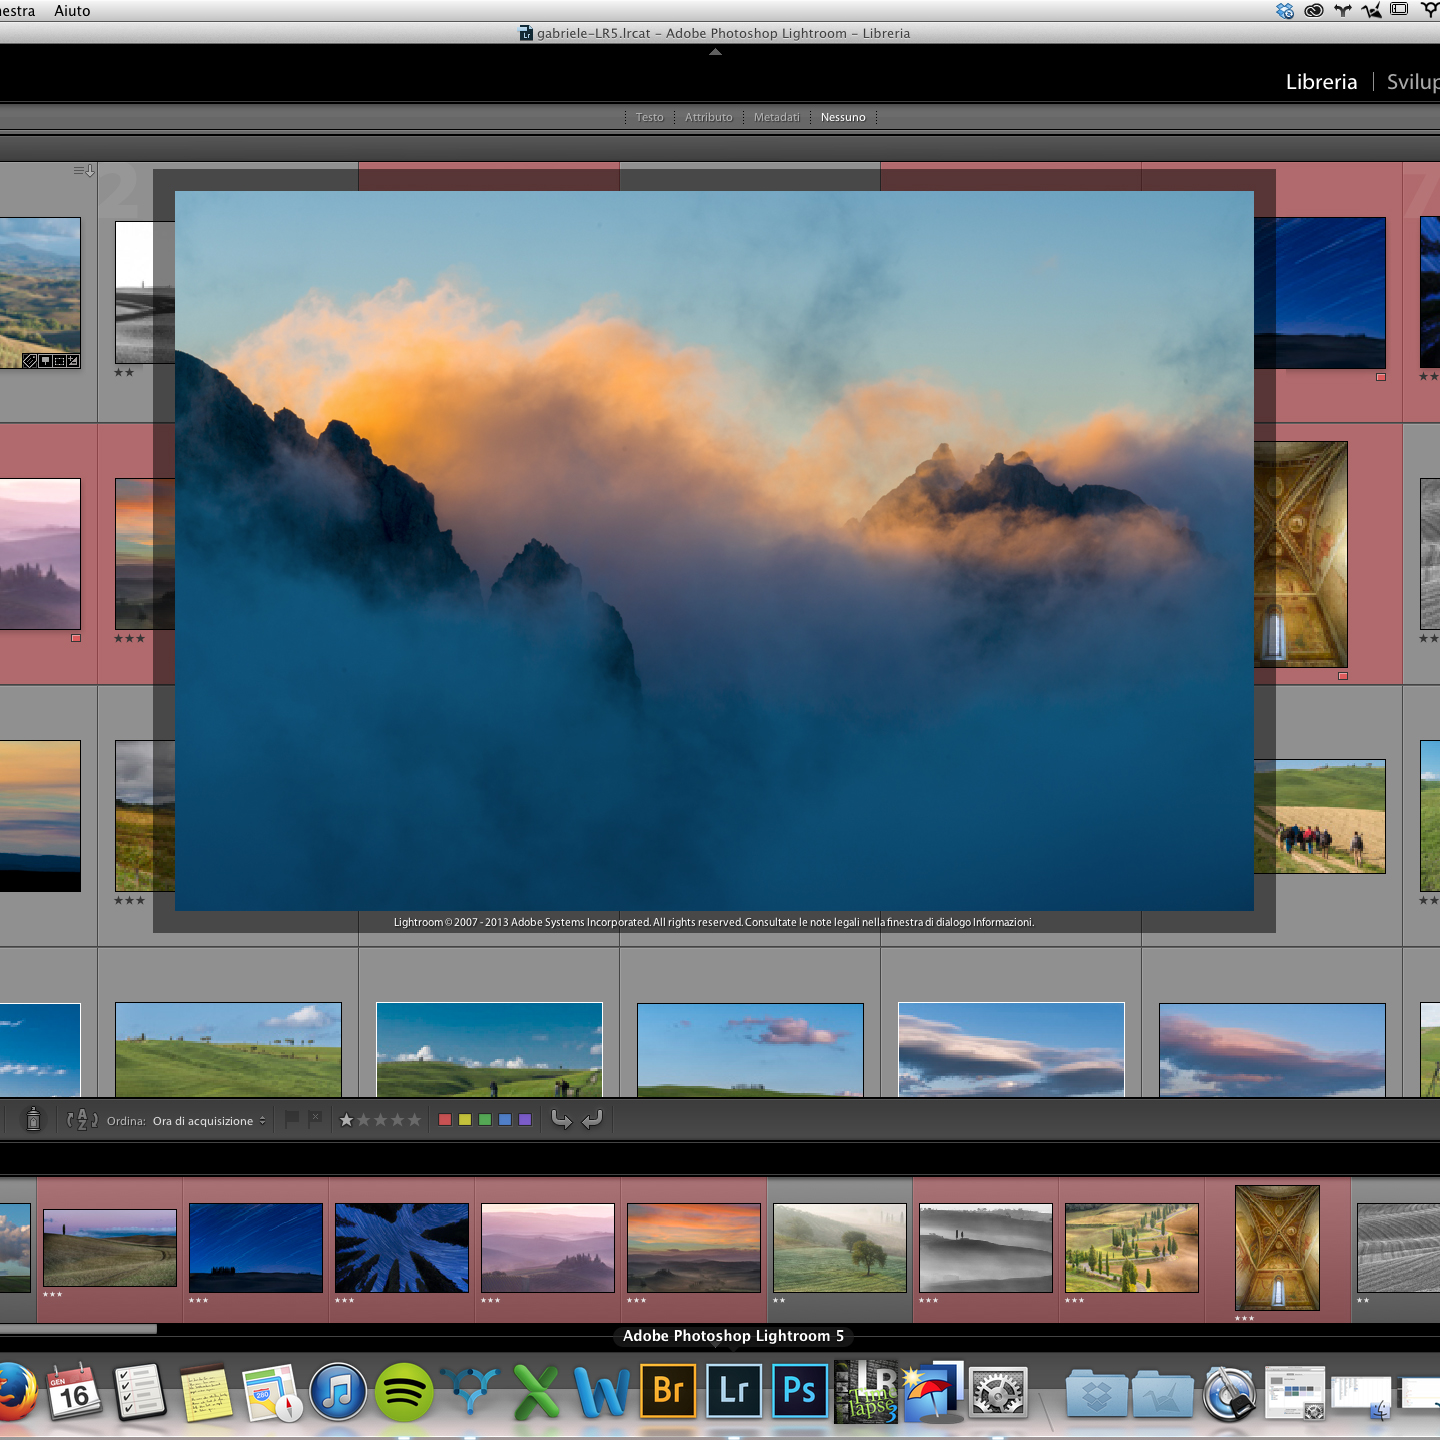 Come personalizzare con una vostra foto la schermata di avvio (splash screen) di Lightroom 5